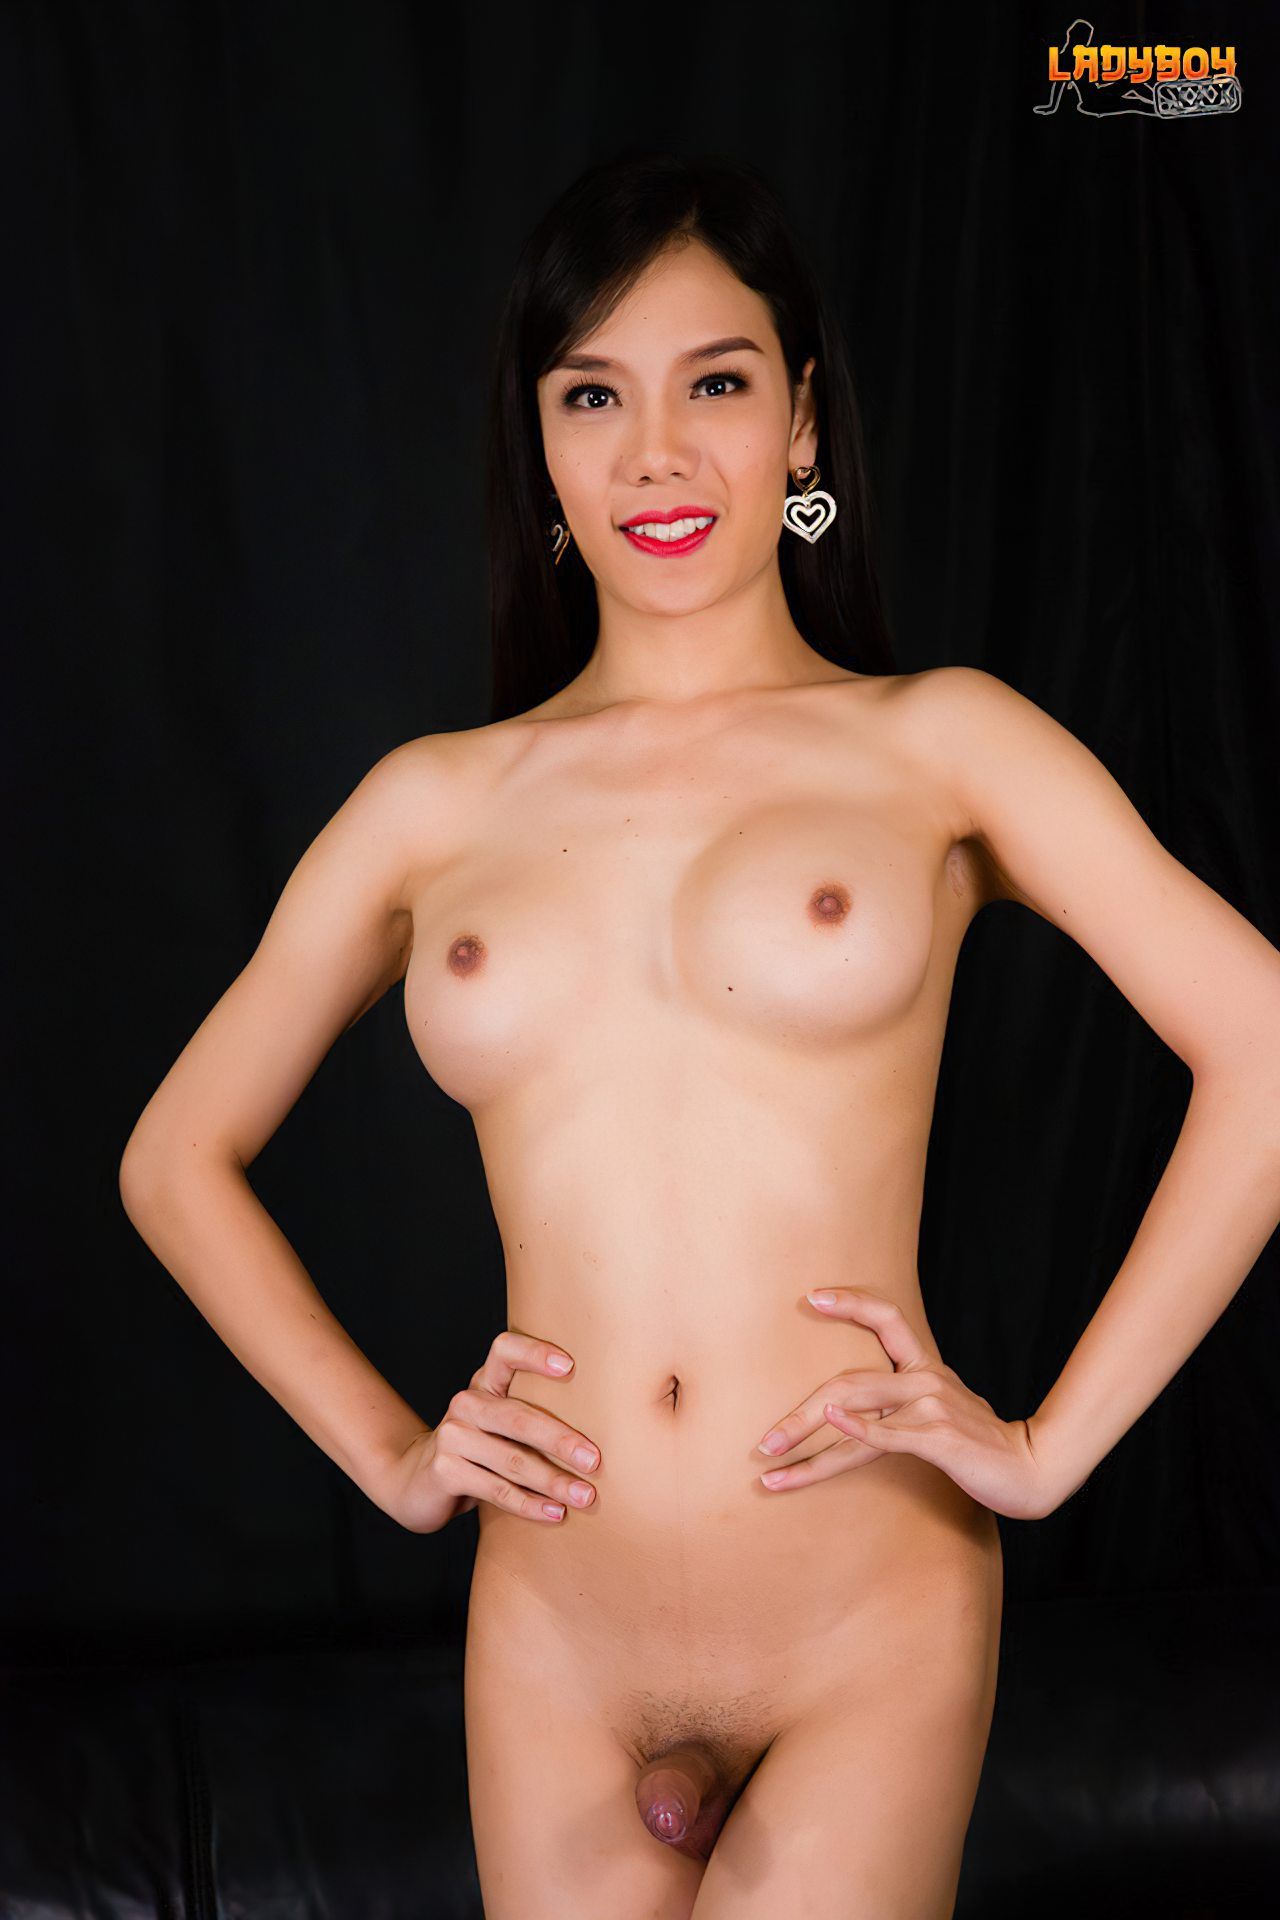 Travesti Princesinha Asiatica (5)